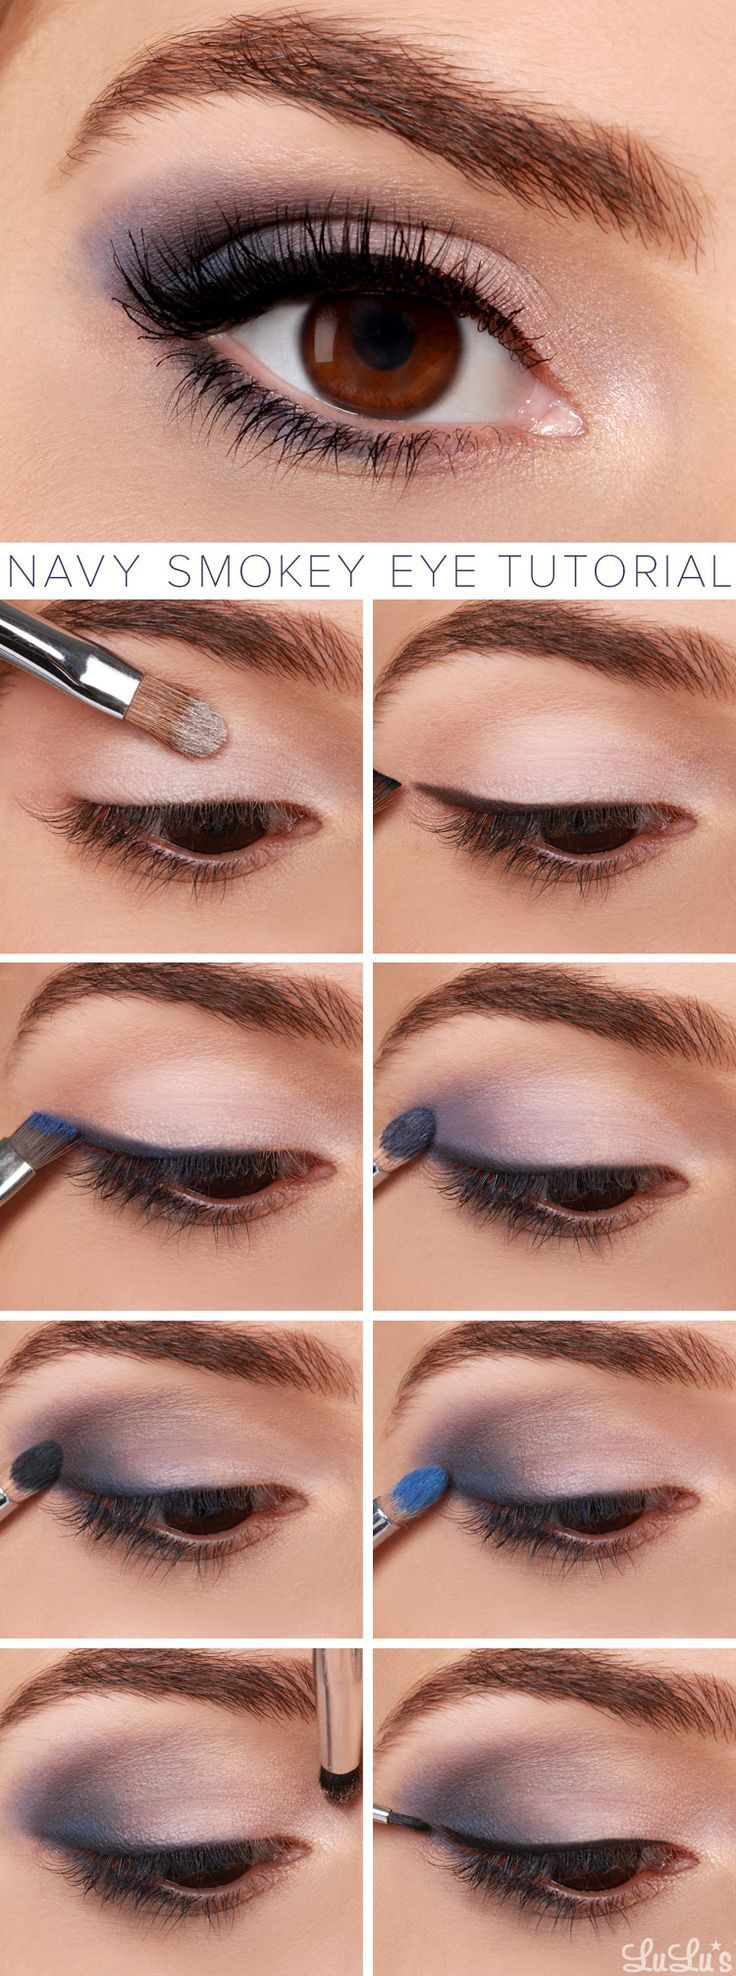 Navy Smokey Eye Makeup Tutorial // See the Latest and #Hotest 2015 #Makeup Trends on: http://www.everydaynewfashions.com/